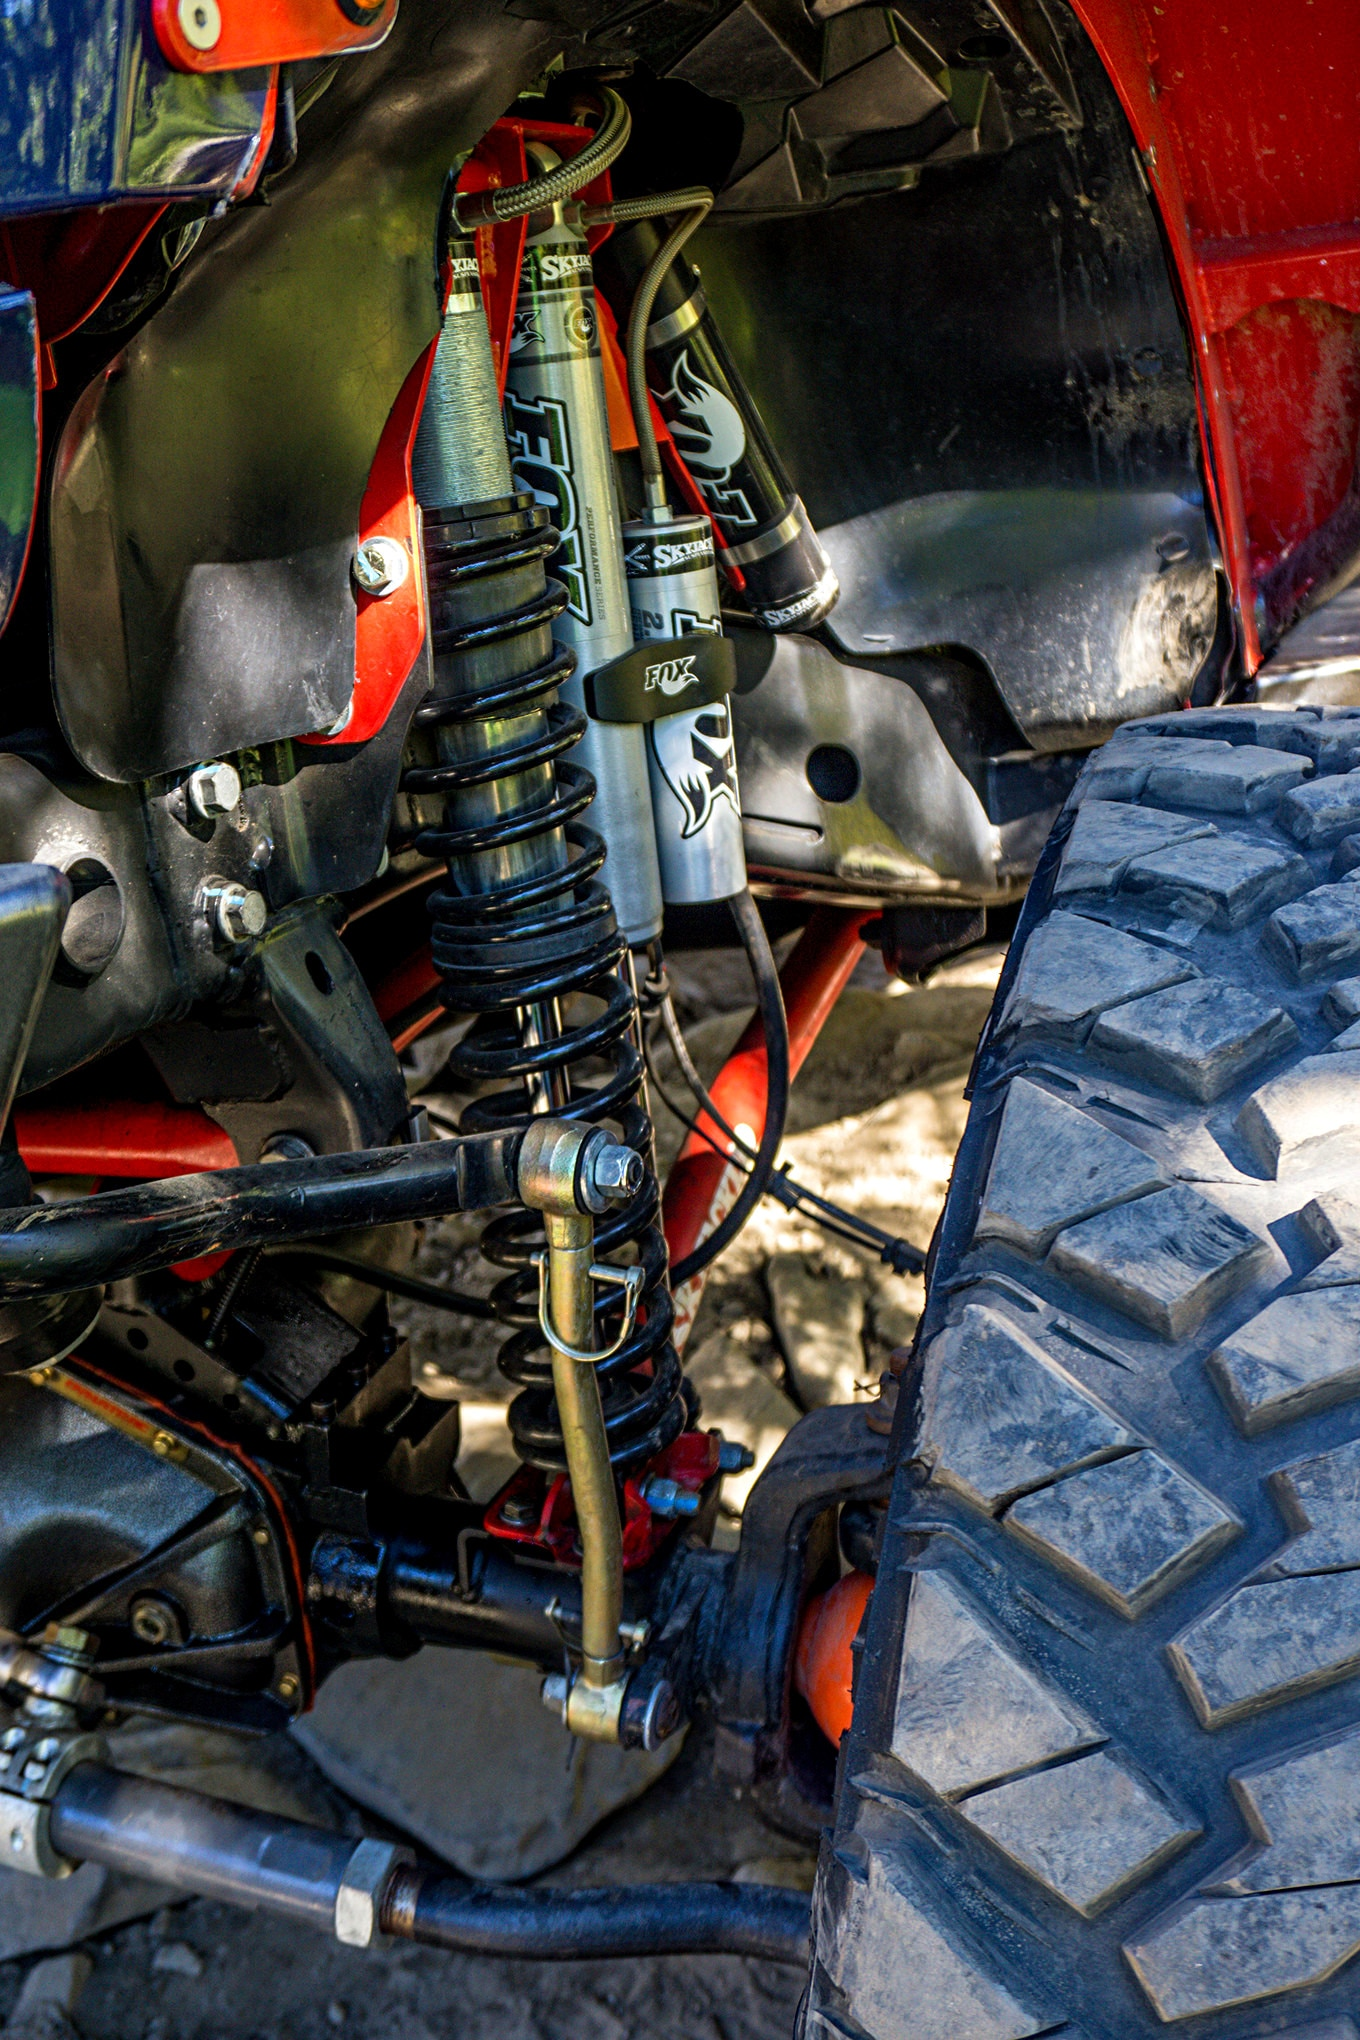 The Ultimate Adventure is also a great place to test new ideas and products. Lonnie McCurry was testing a new JK suspension system with Fox coilover shocks and a secondary remote-reservoir shock on his 7,000-pound JK. If they can take that sort of beating McCurry knows he doesn't have to worry about warranty complaints.